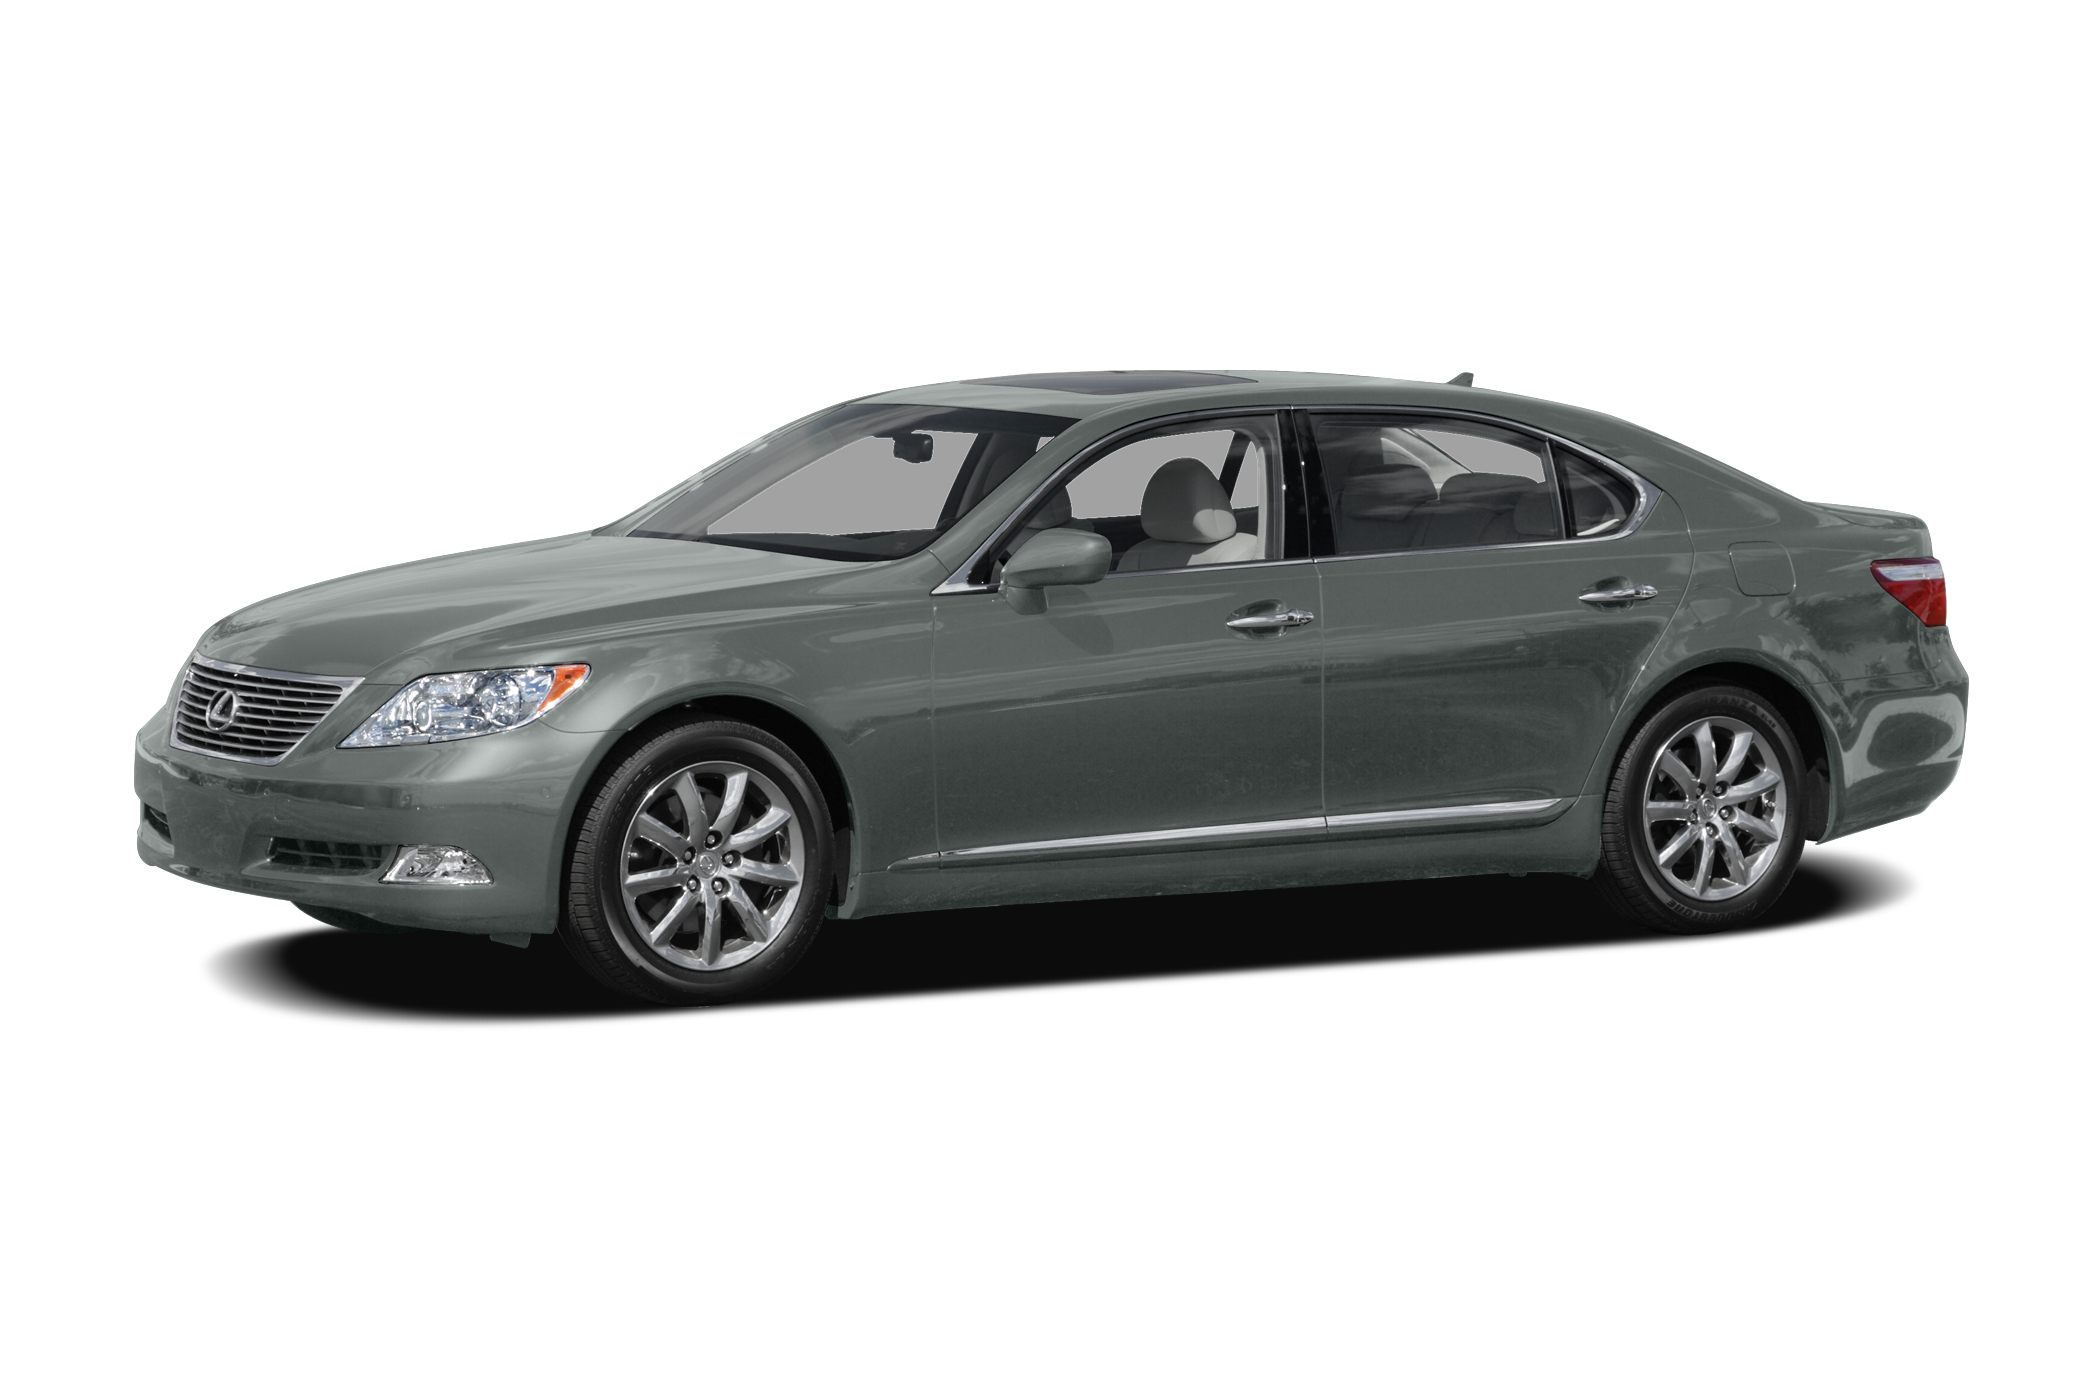 USB70LEC141A0101 Take A Look About 2007 Lexus Ls 460 with Gorgeous Photos Cars Review